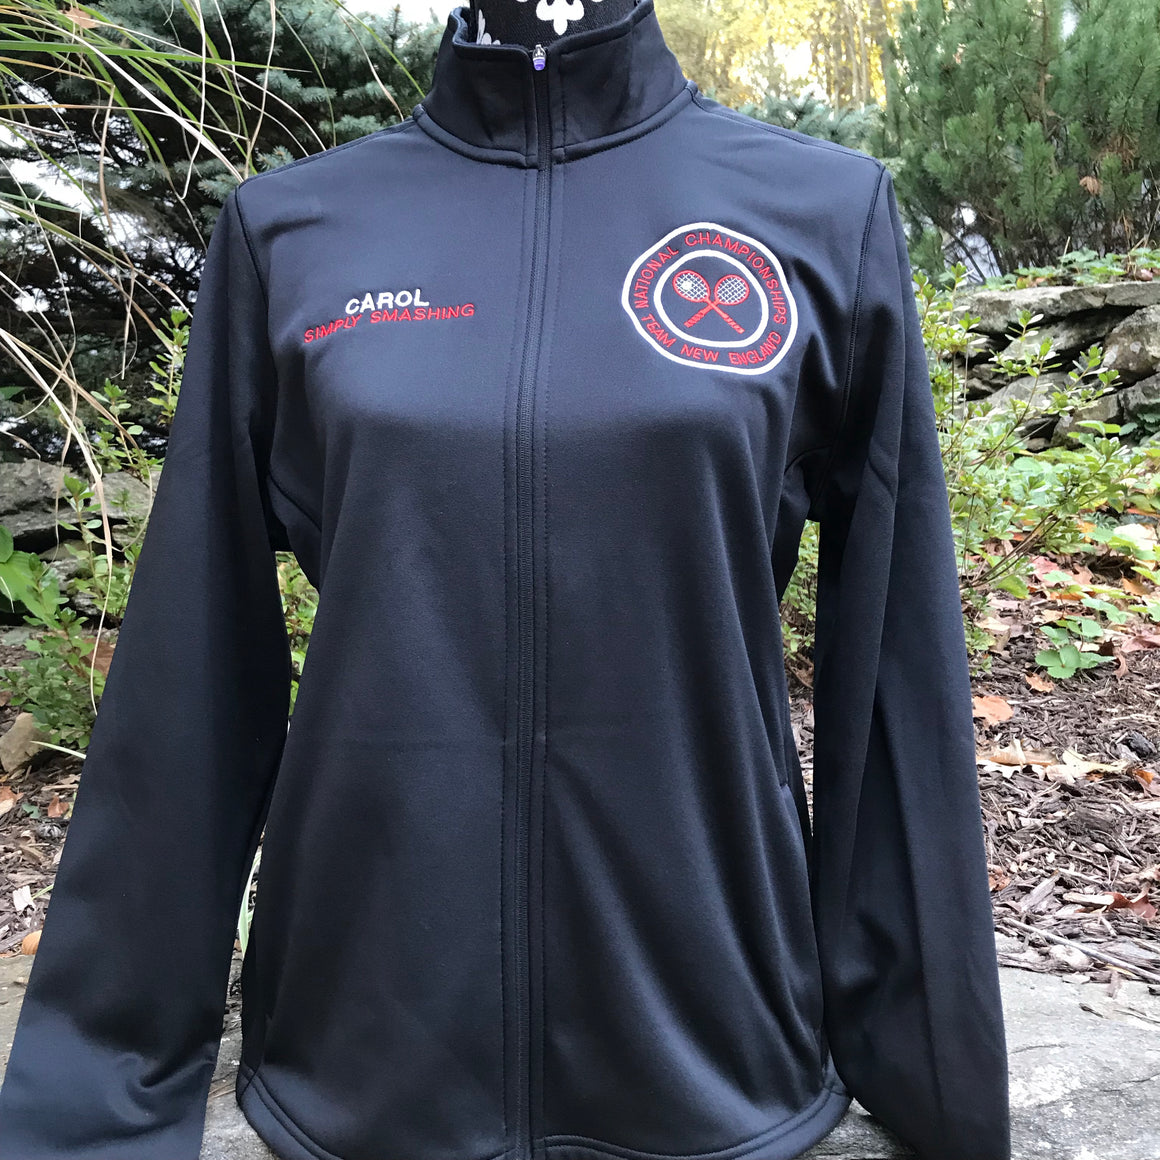 Team Warmup Jacket